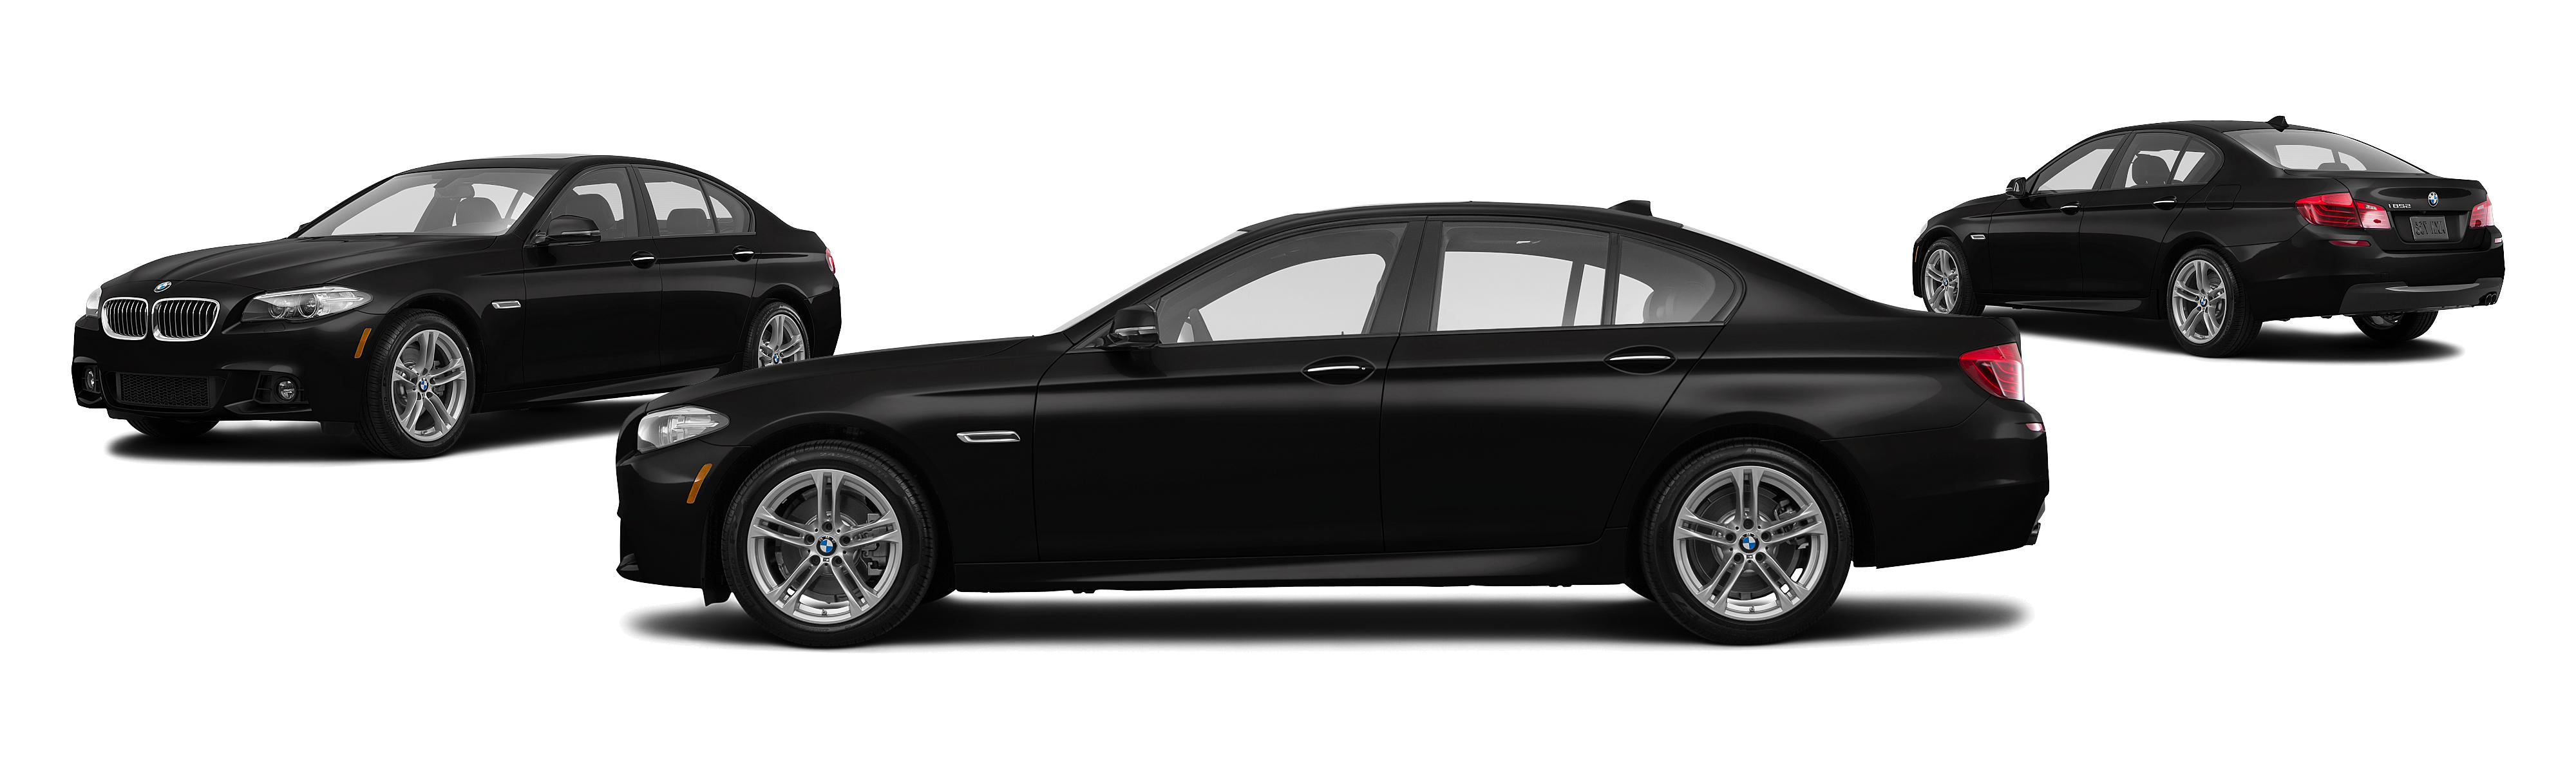 2016 BMW 5 Series 528i 4dr Sedan Research GrooveCar